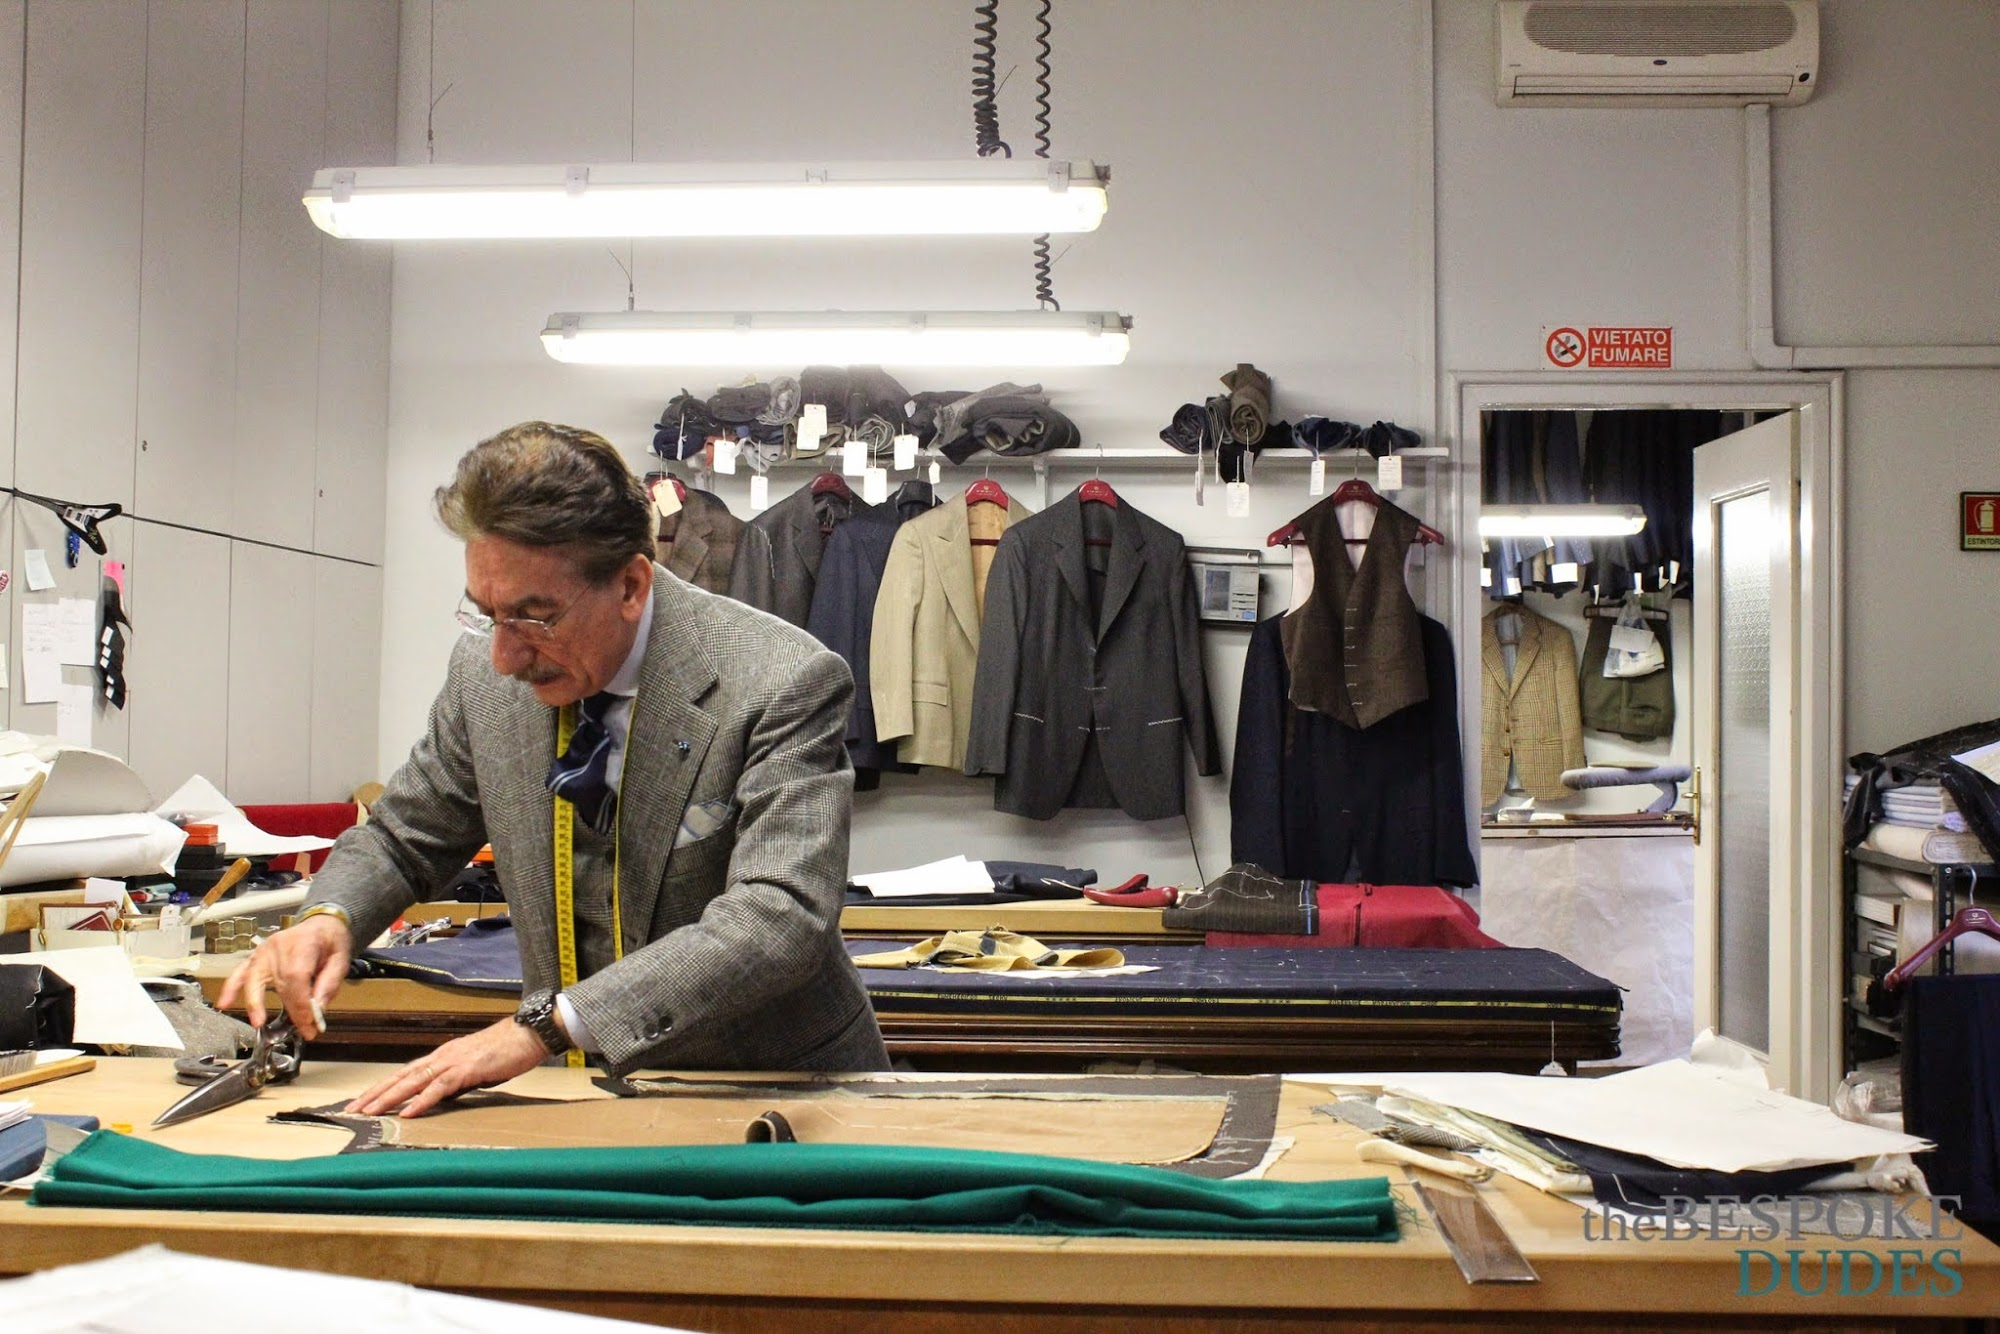 A. Caraceni - The cradle of Milanese tailoring